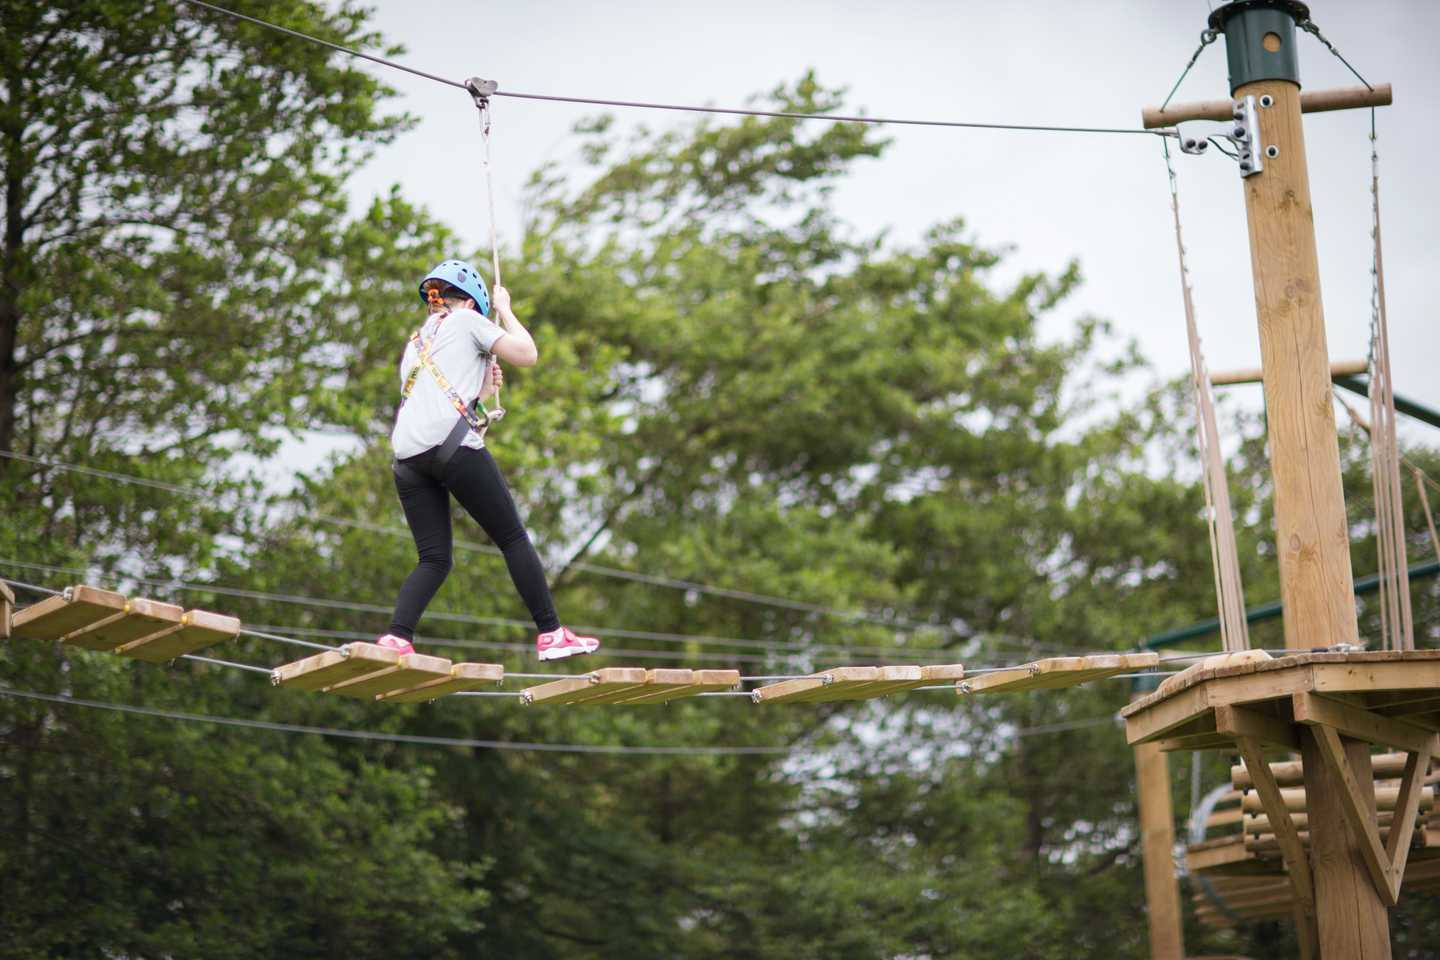 A guest climbing on the Aerial Adventure